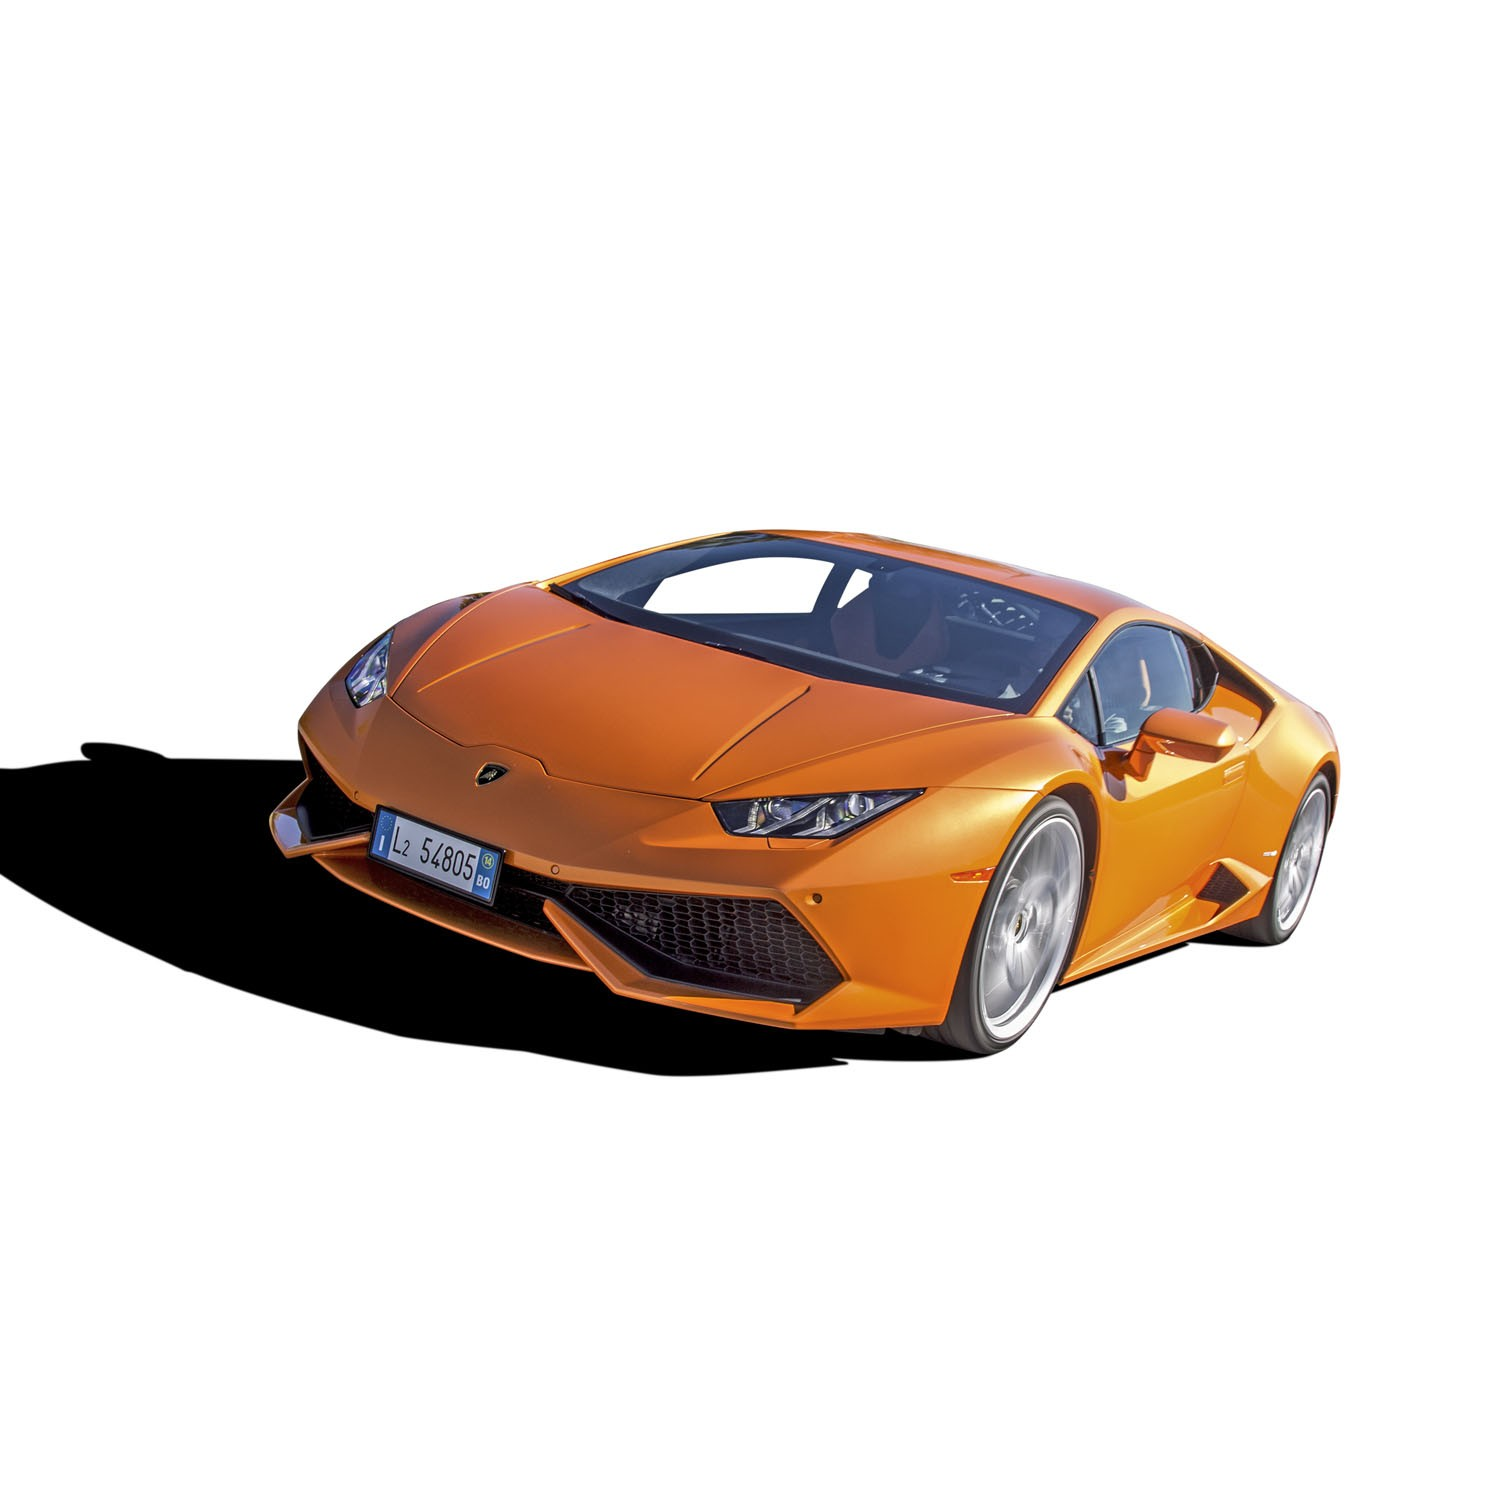 nitro rc car kits with Build The Lamborghini Huracan on Build The Lamborghini Huracan additionally Build Rb7 F1 Red Bull as well 400357510243 besides Build Rb7 F1 Red Bull as well 110604.